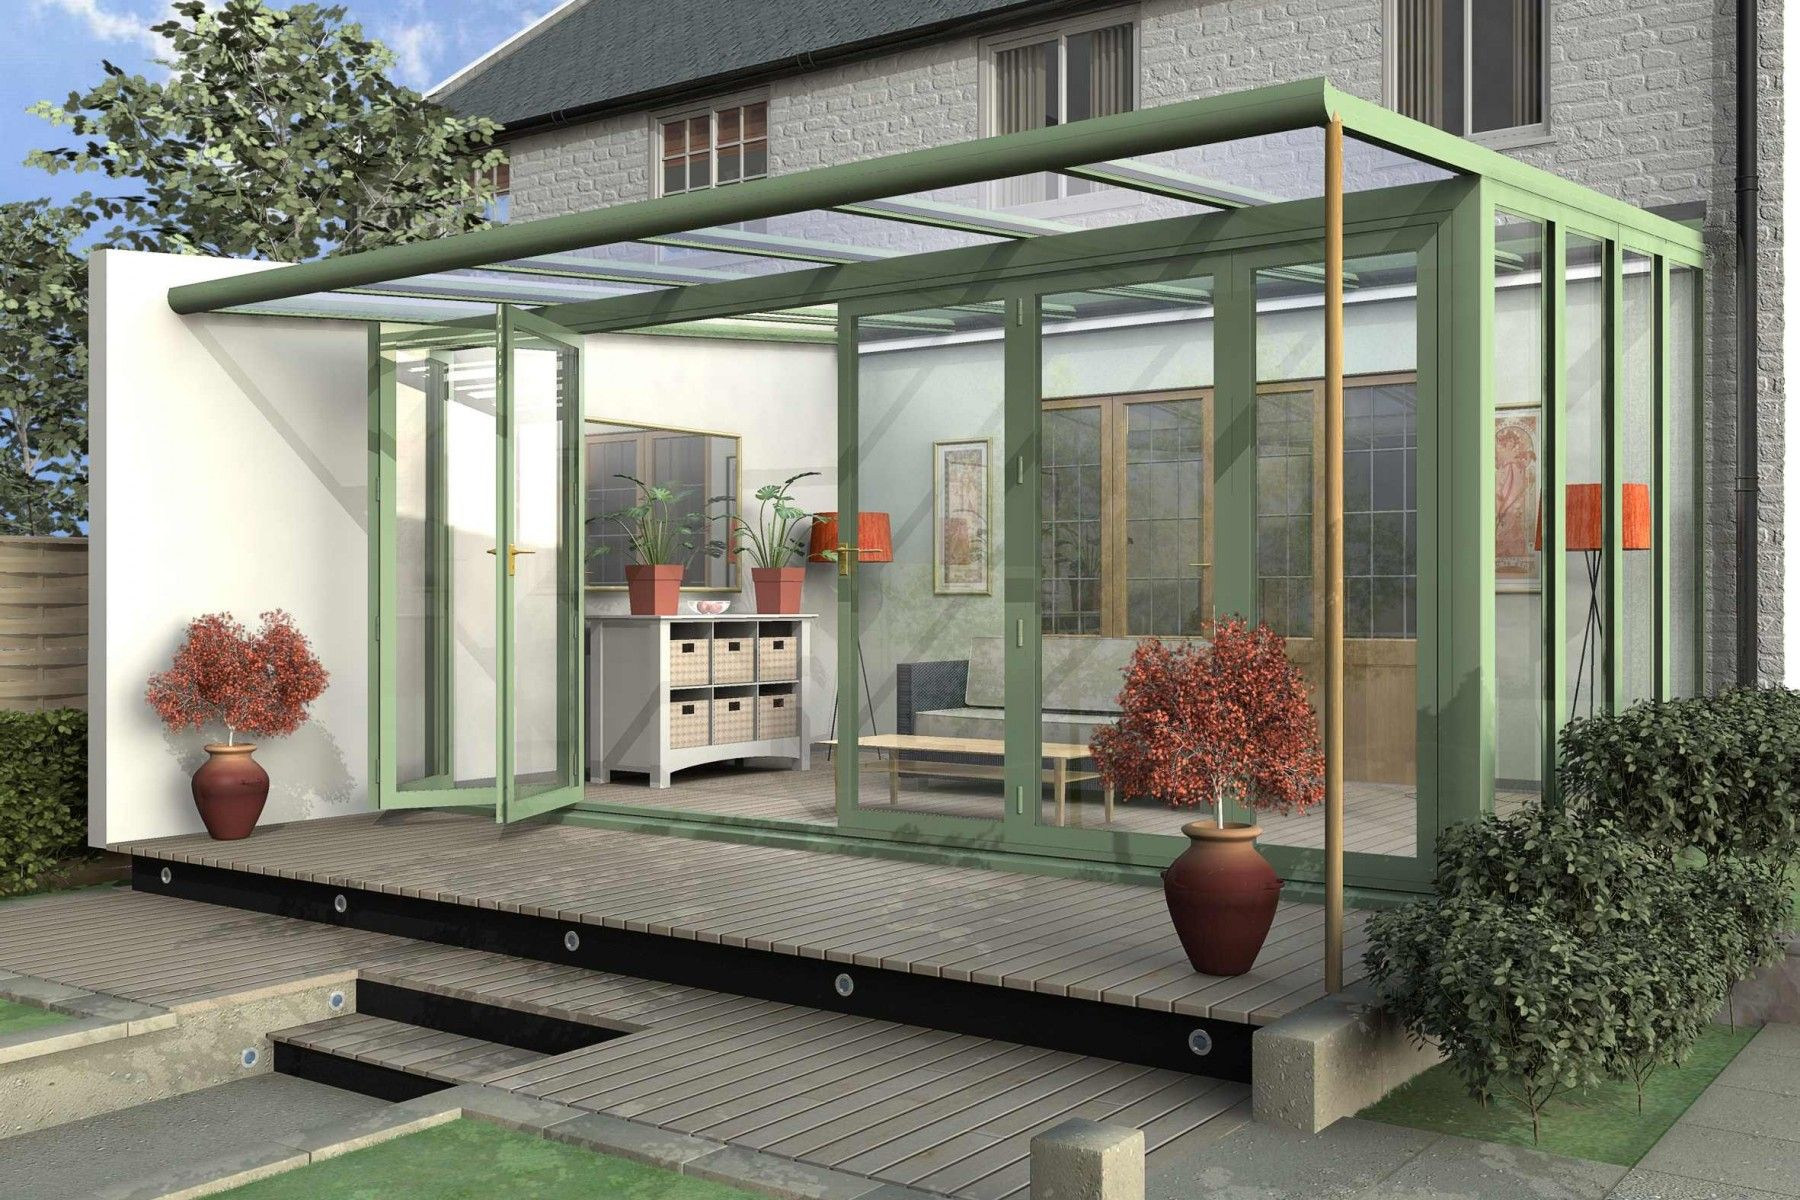 Inspiration Gallery Ultraframe Conservatory Roofs In 2020 Conservatory Design Curved Pergola Conservatory Roof